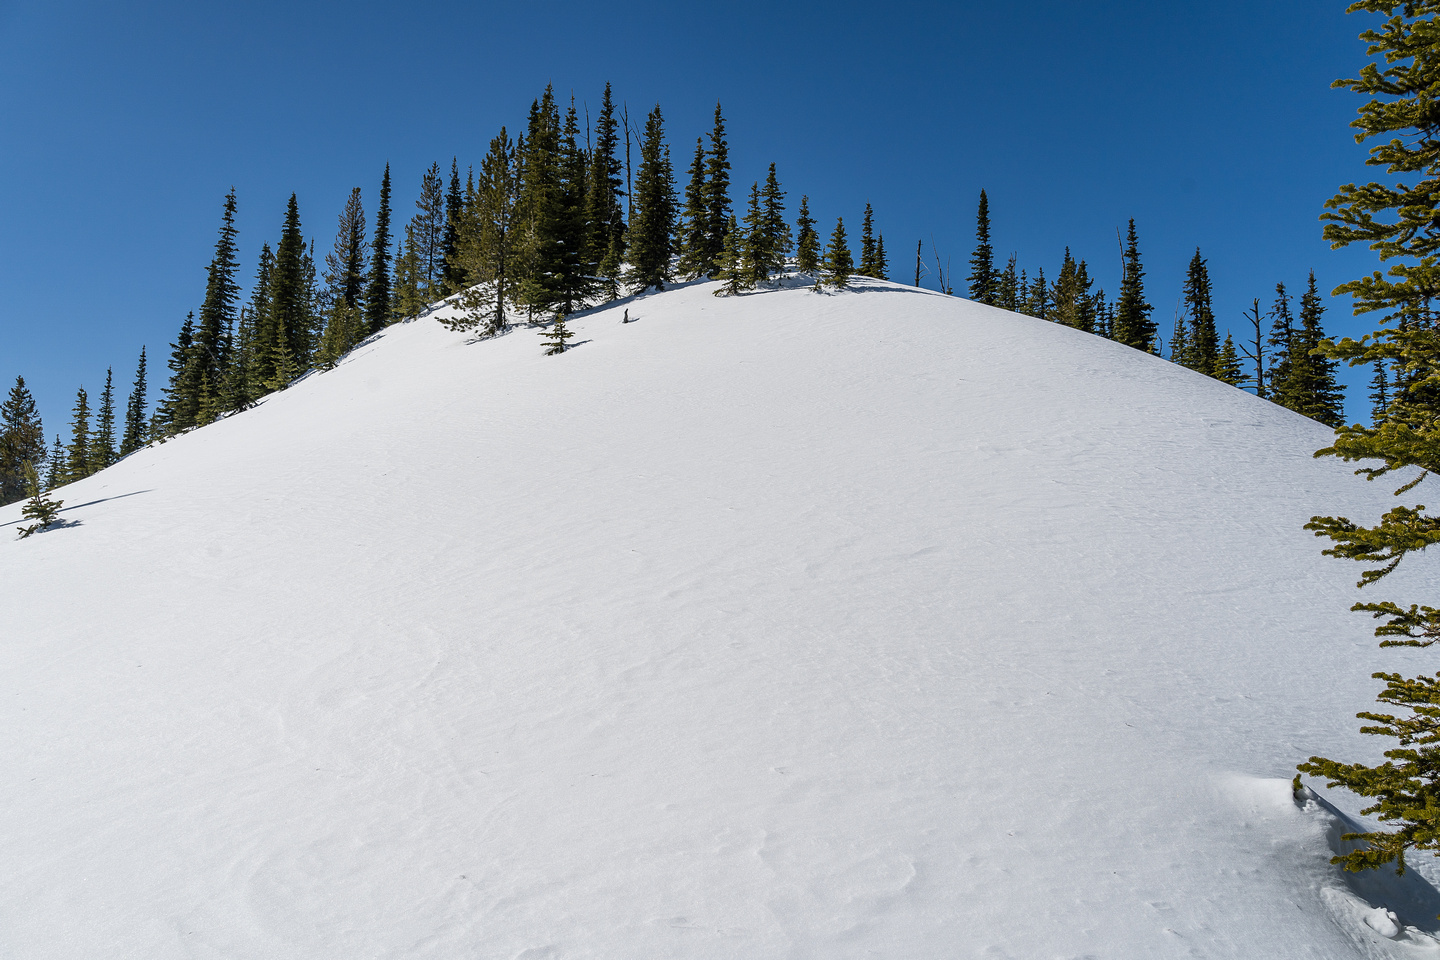 Breaking trail through deep, sticky snow to the summit.